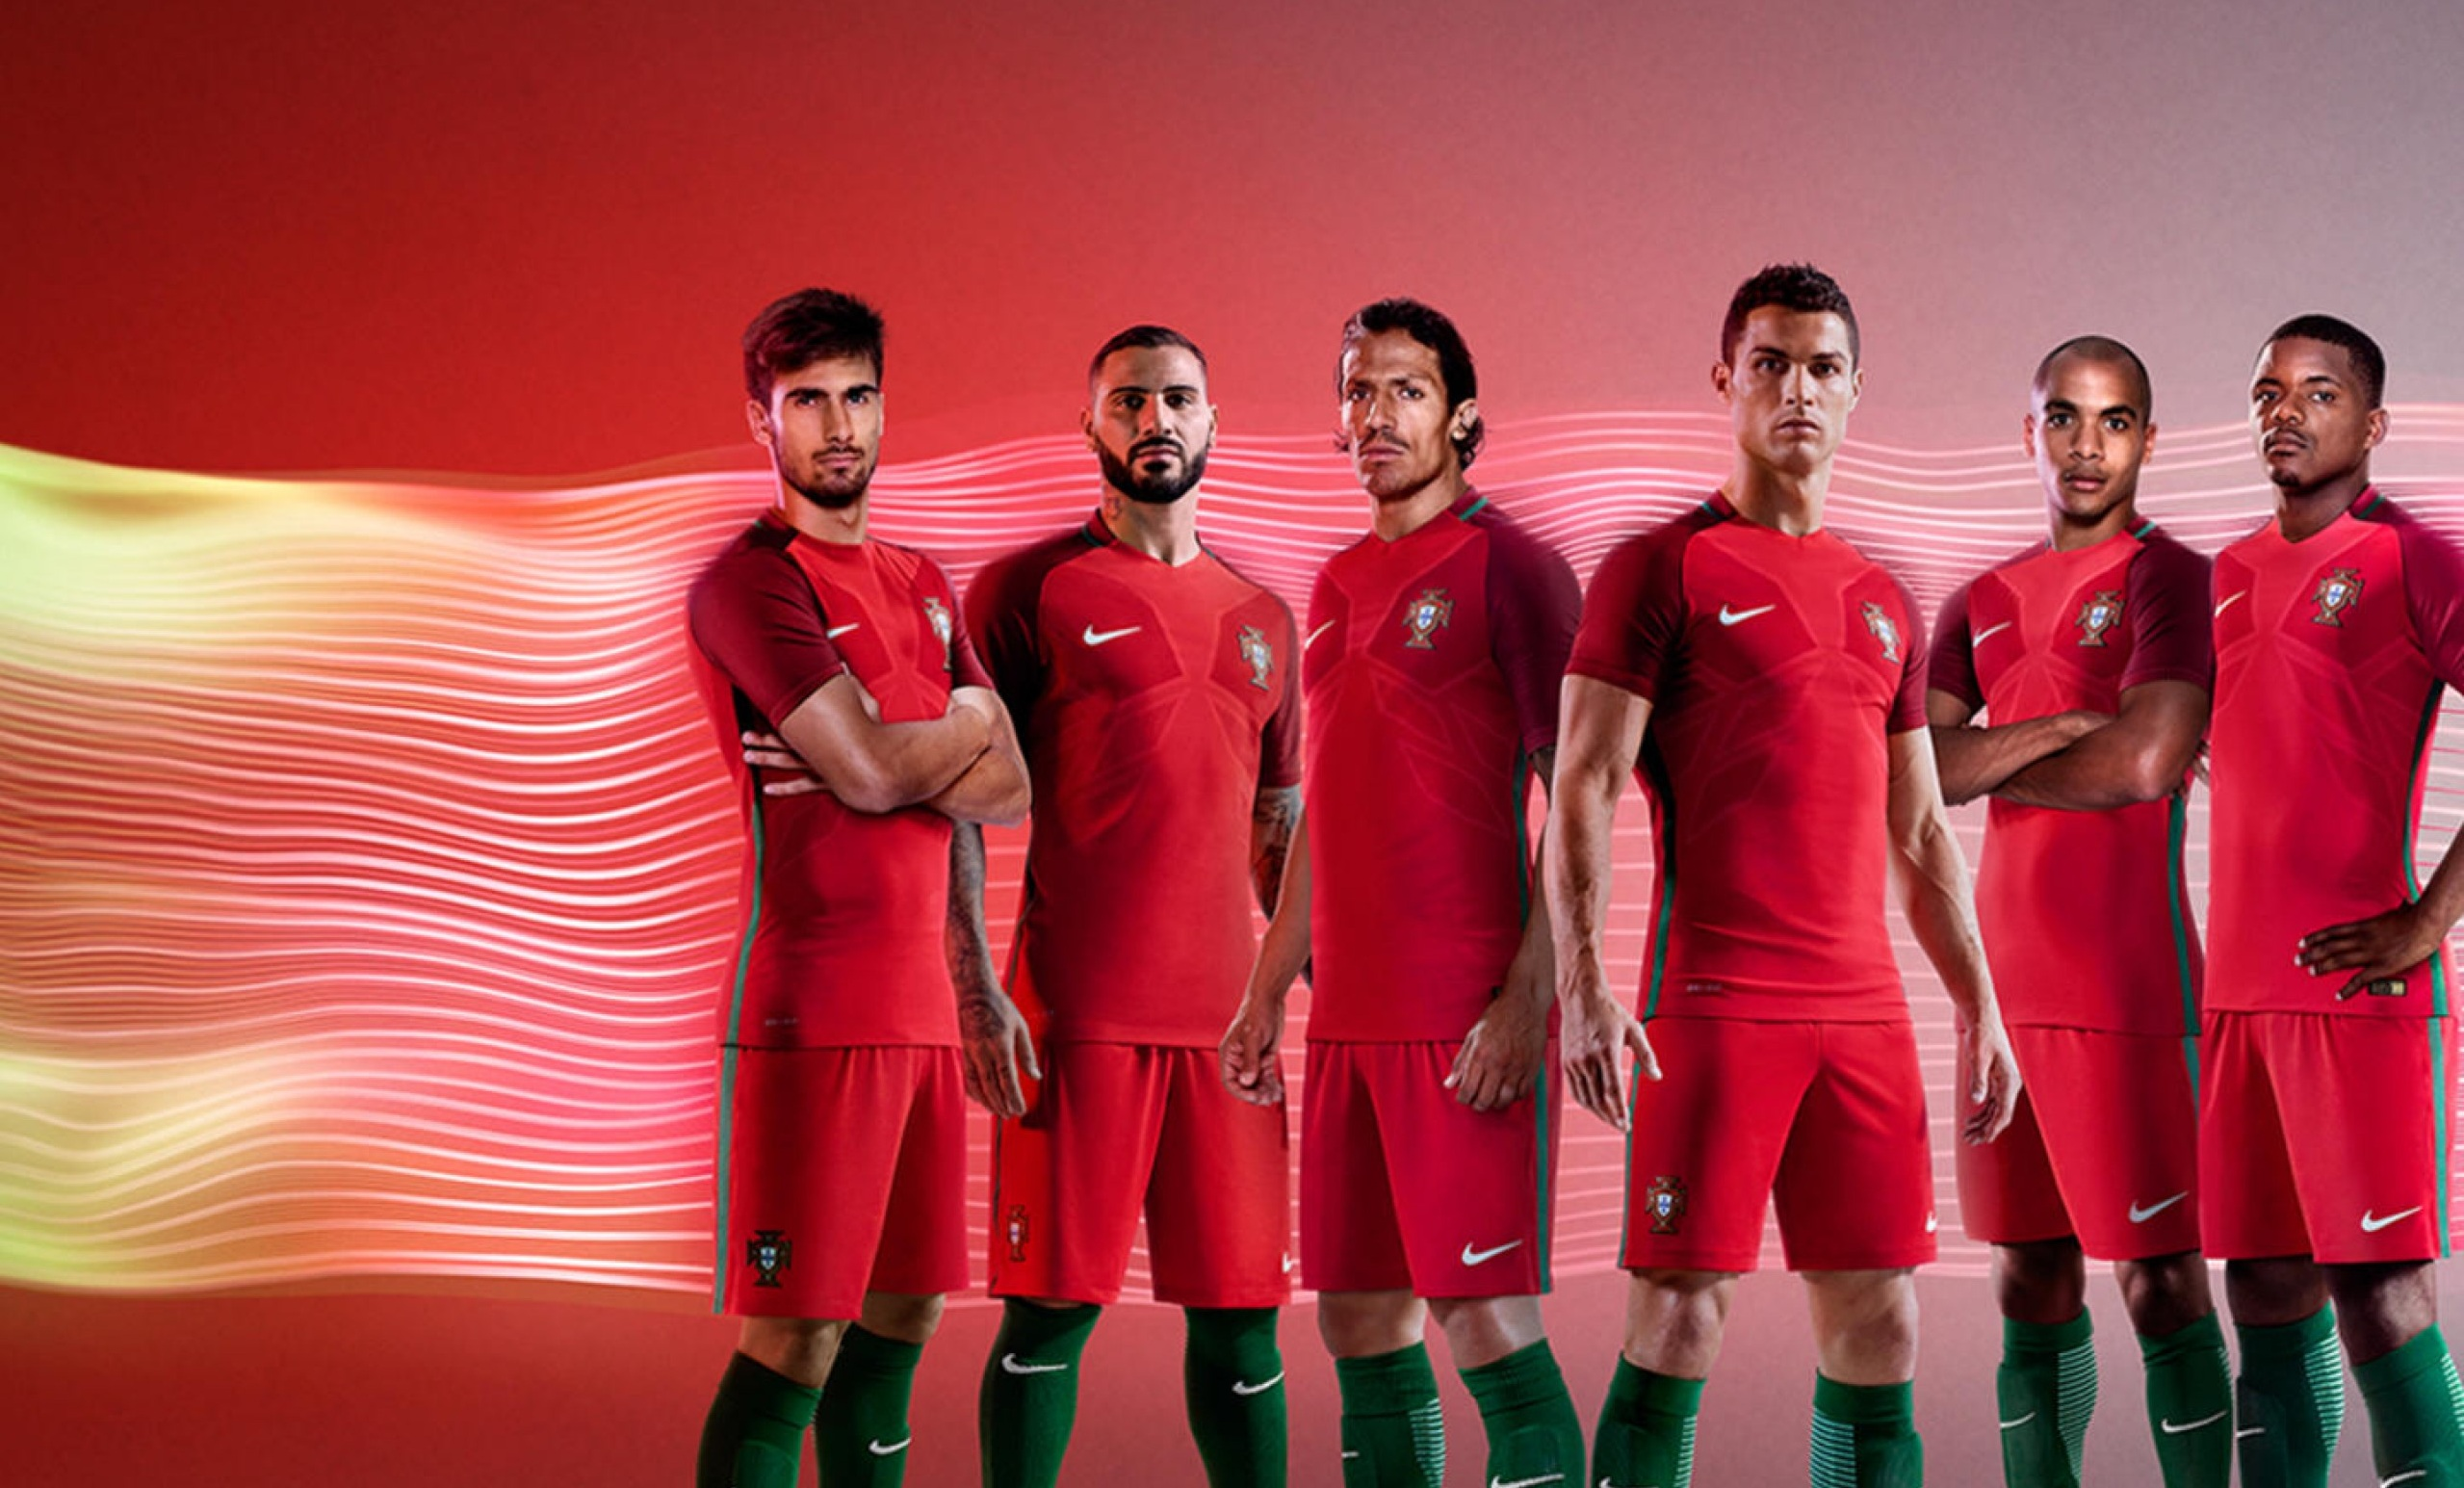 Portugal Football Team Wallpapers HD Wallpapers Download Free Images Wallpaper [1000image.com]